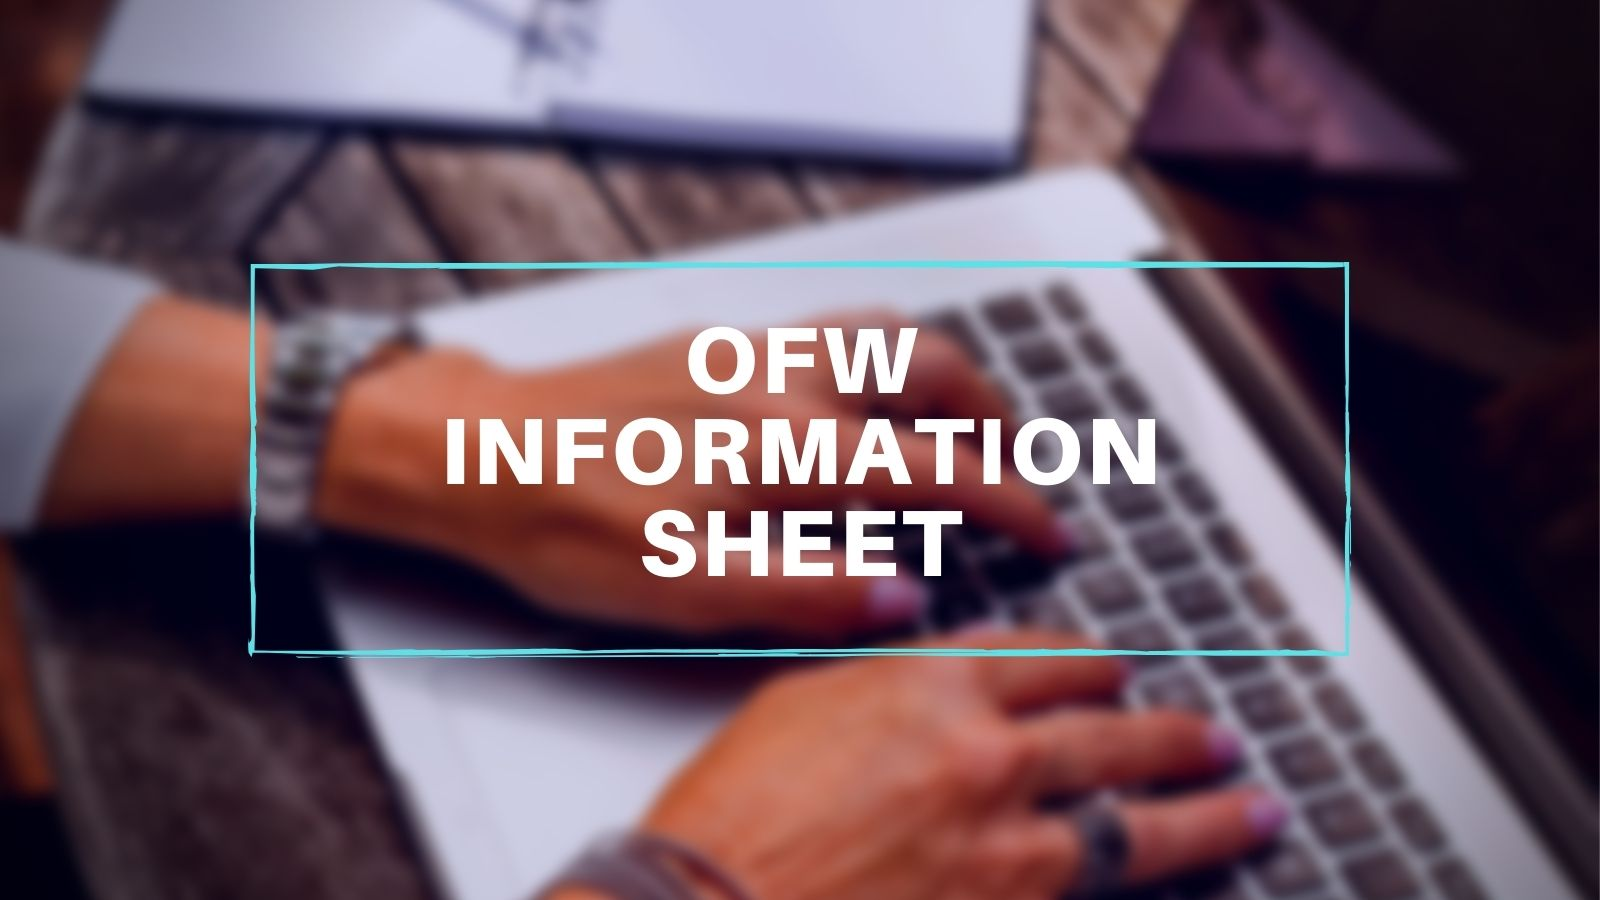 how to get ofw information sheet online in poea